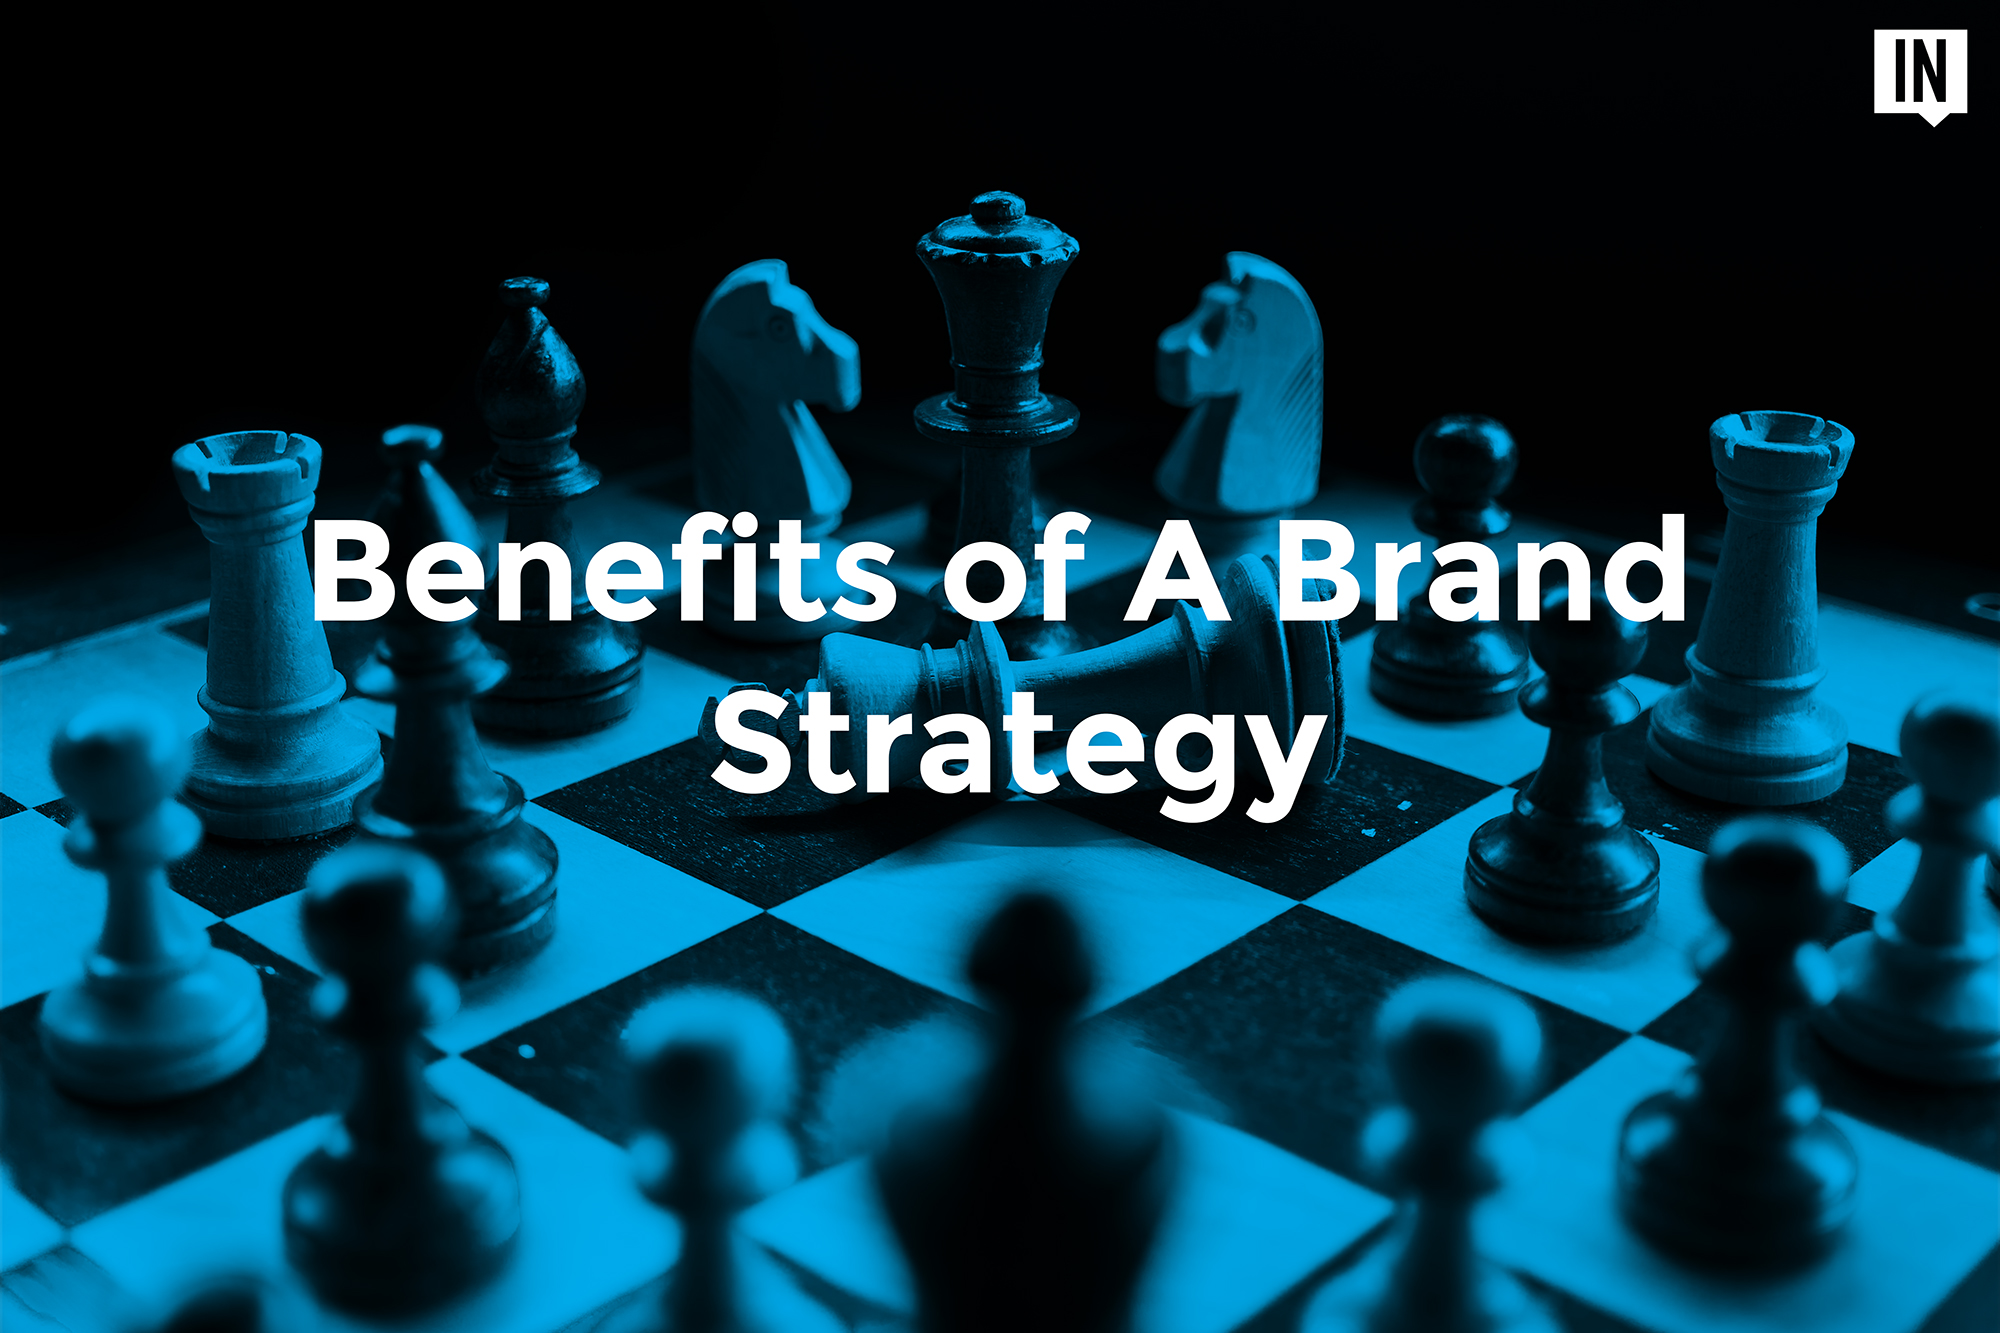 Benefits of A Brand Strategy